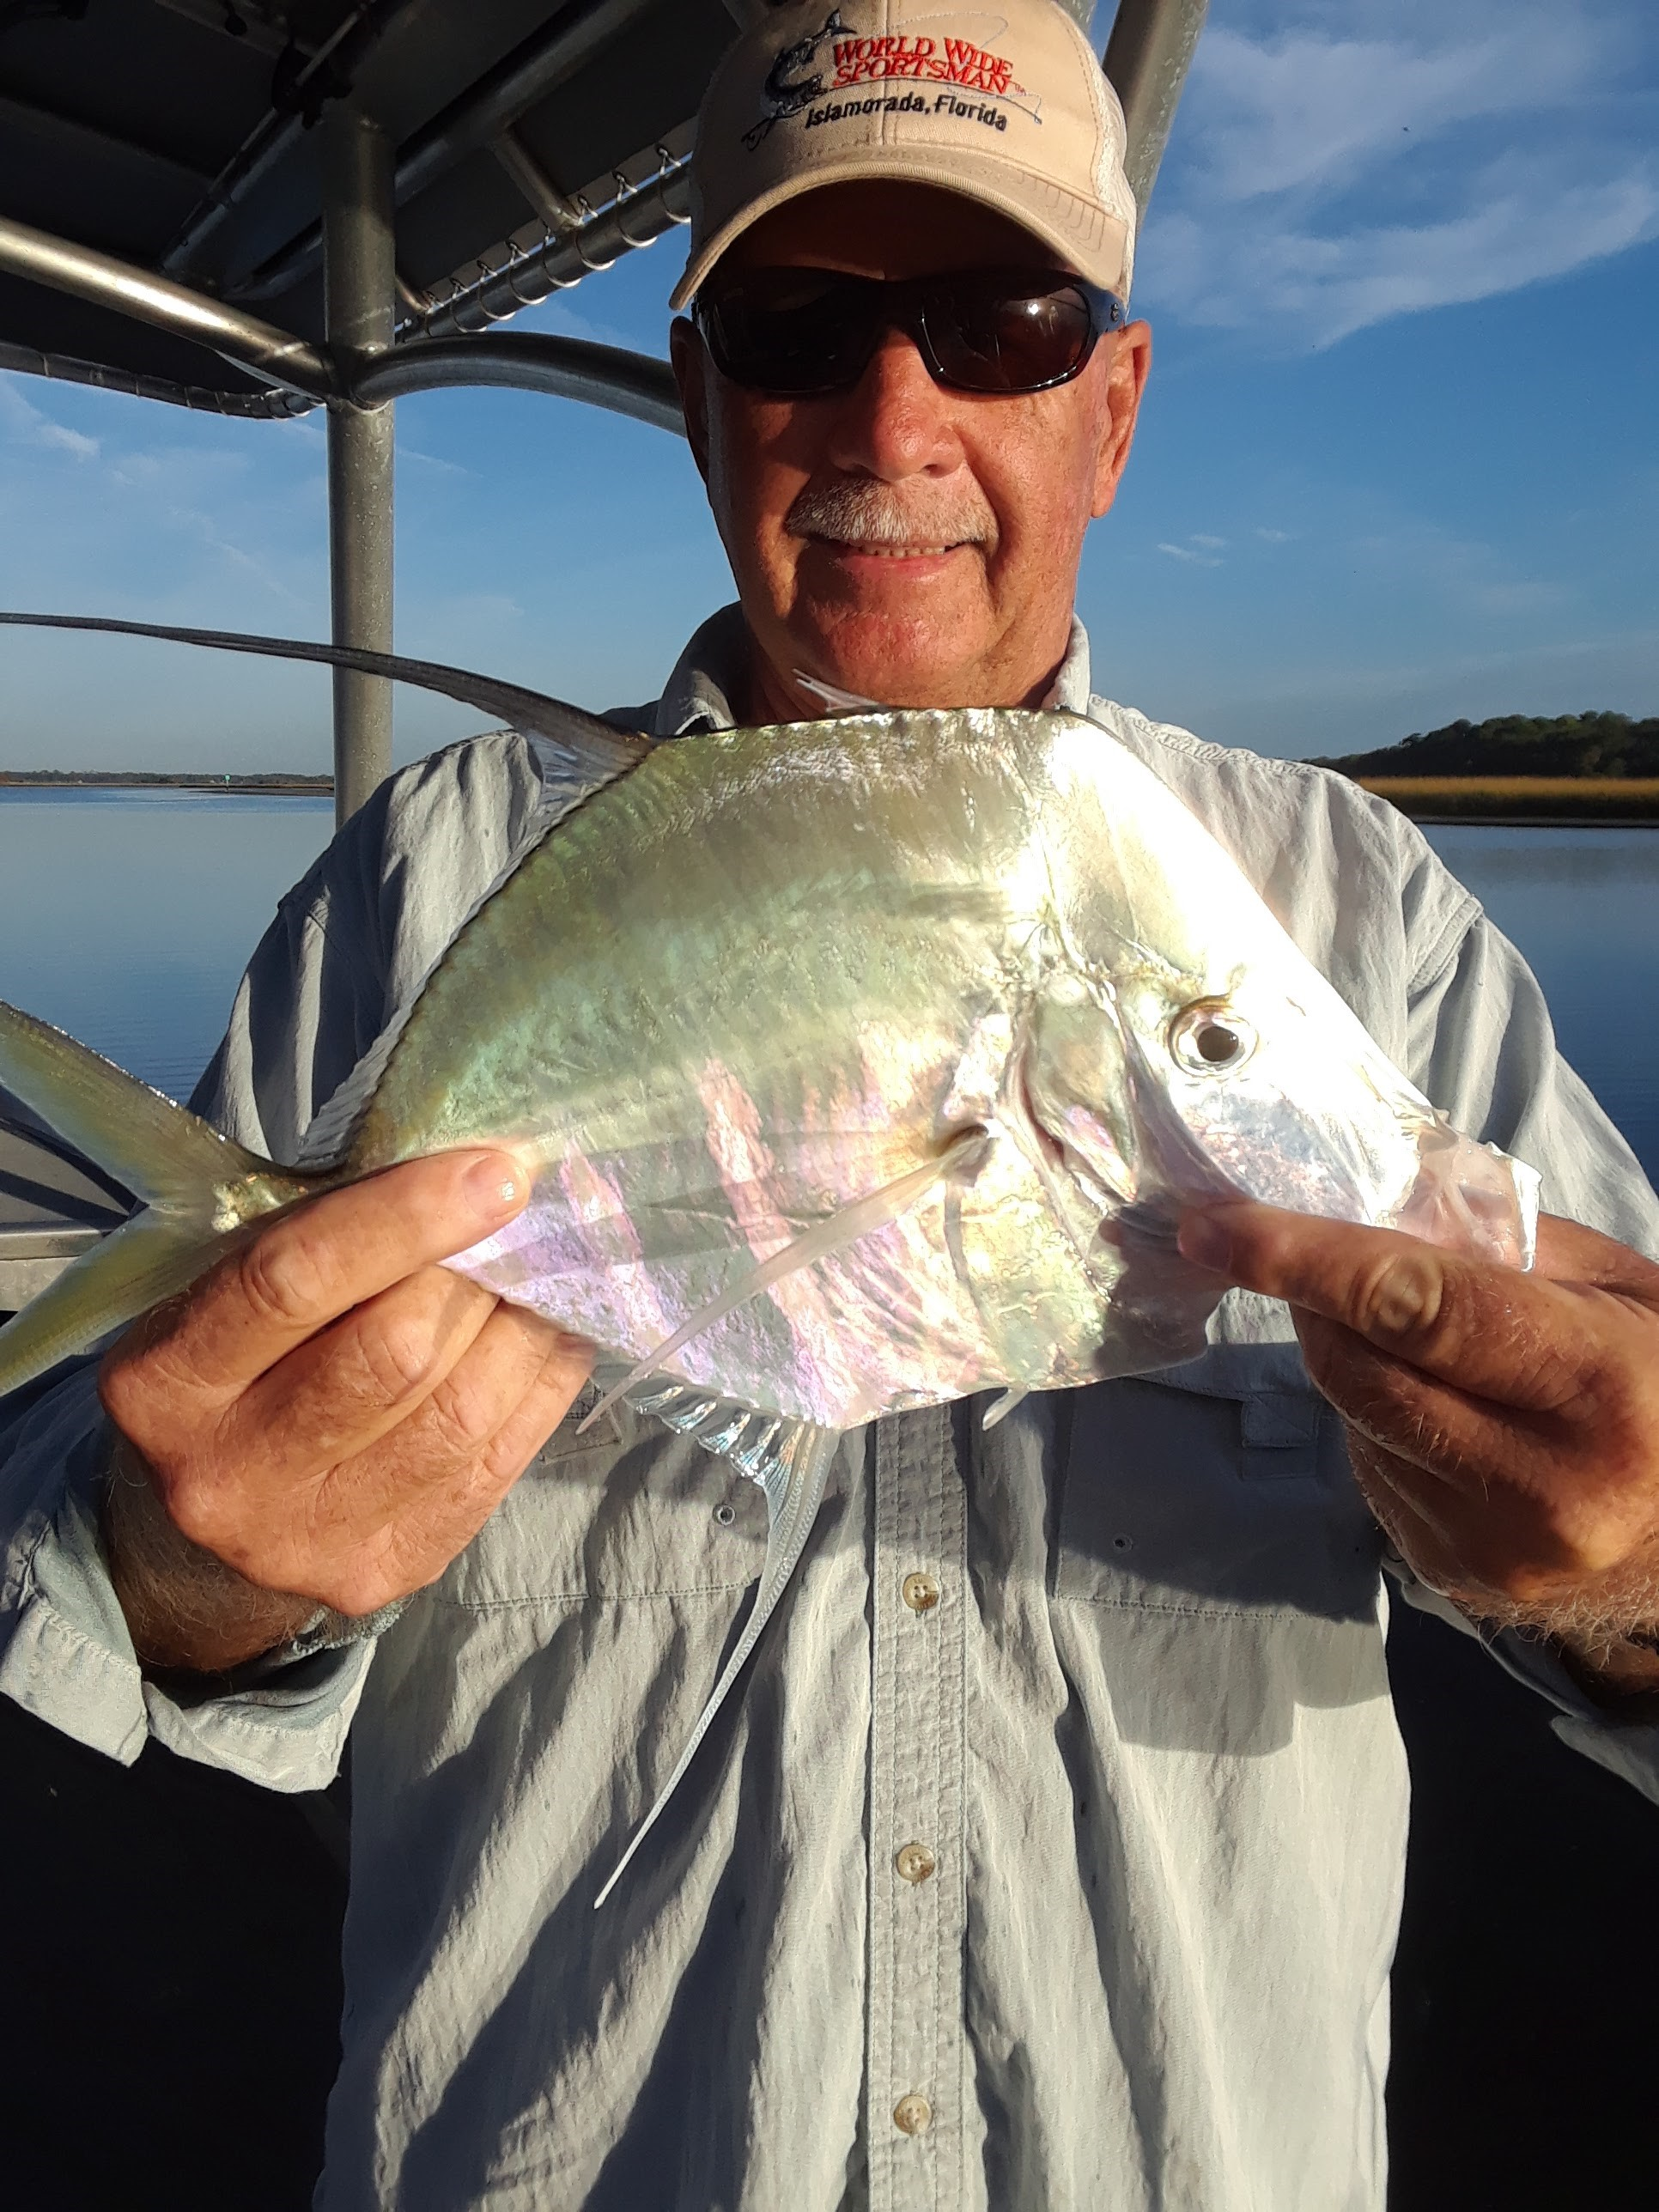 Capt Daves Catch aboard his charter trip